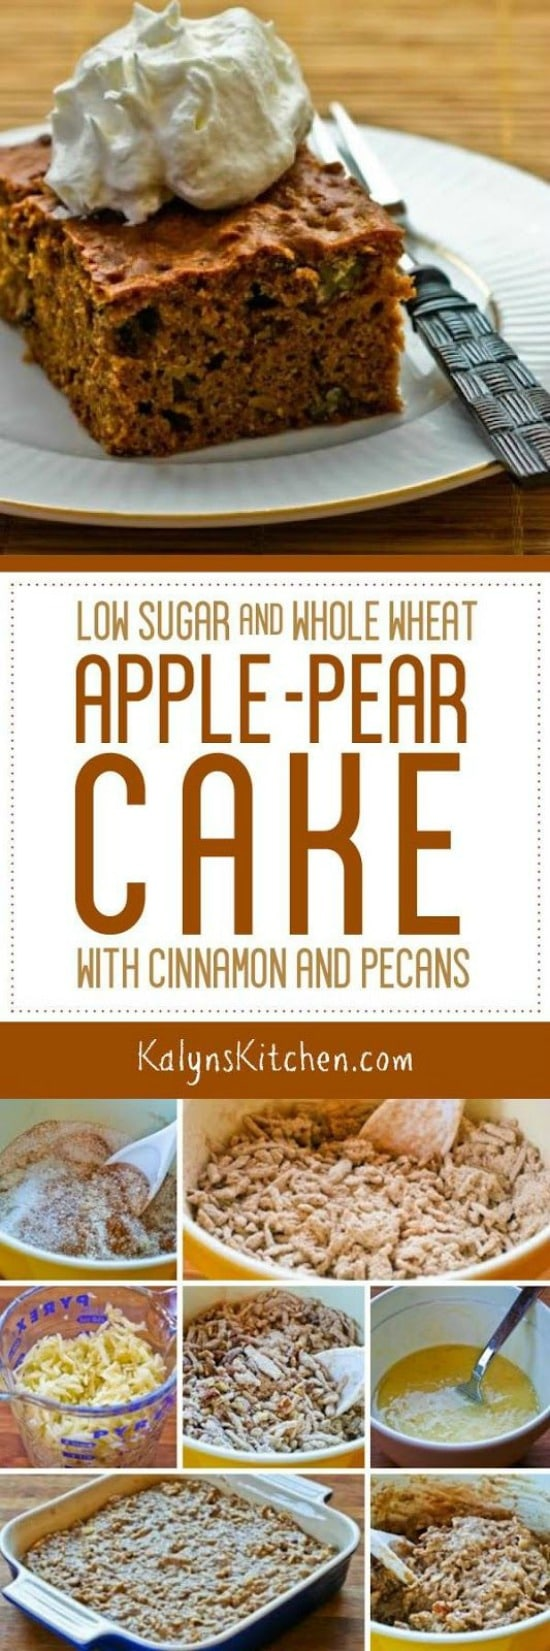 Low Sugar and Whole Wheat Apple-Pear Cake with Cinnamon and Pecans found on KalynsKitchen.com